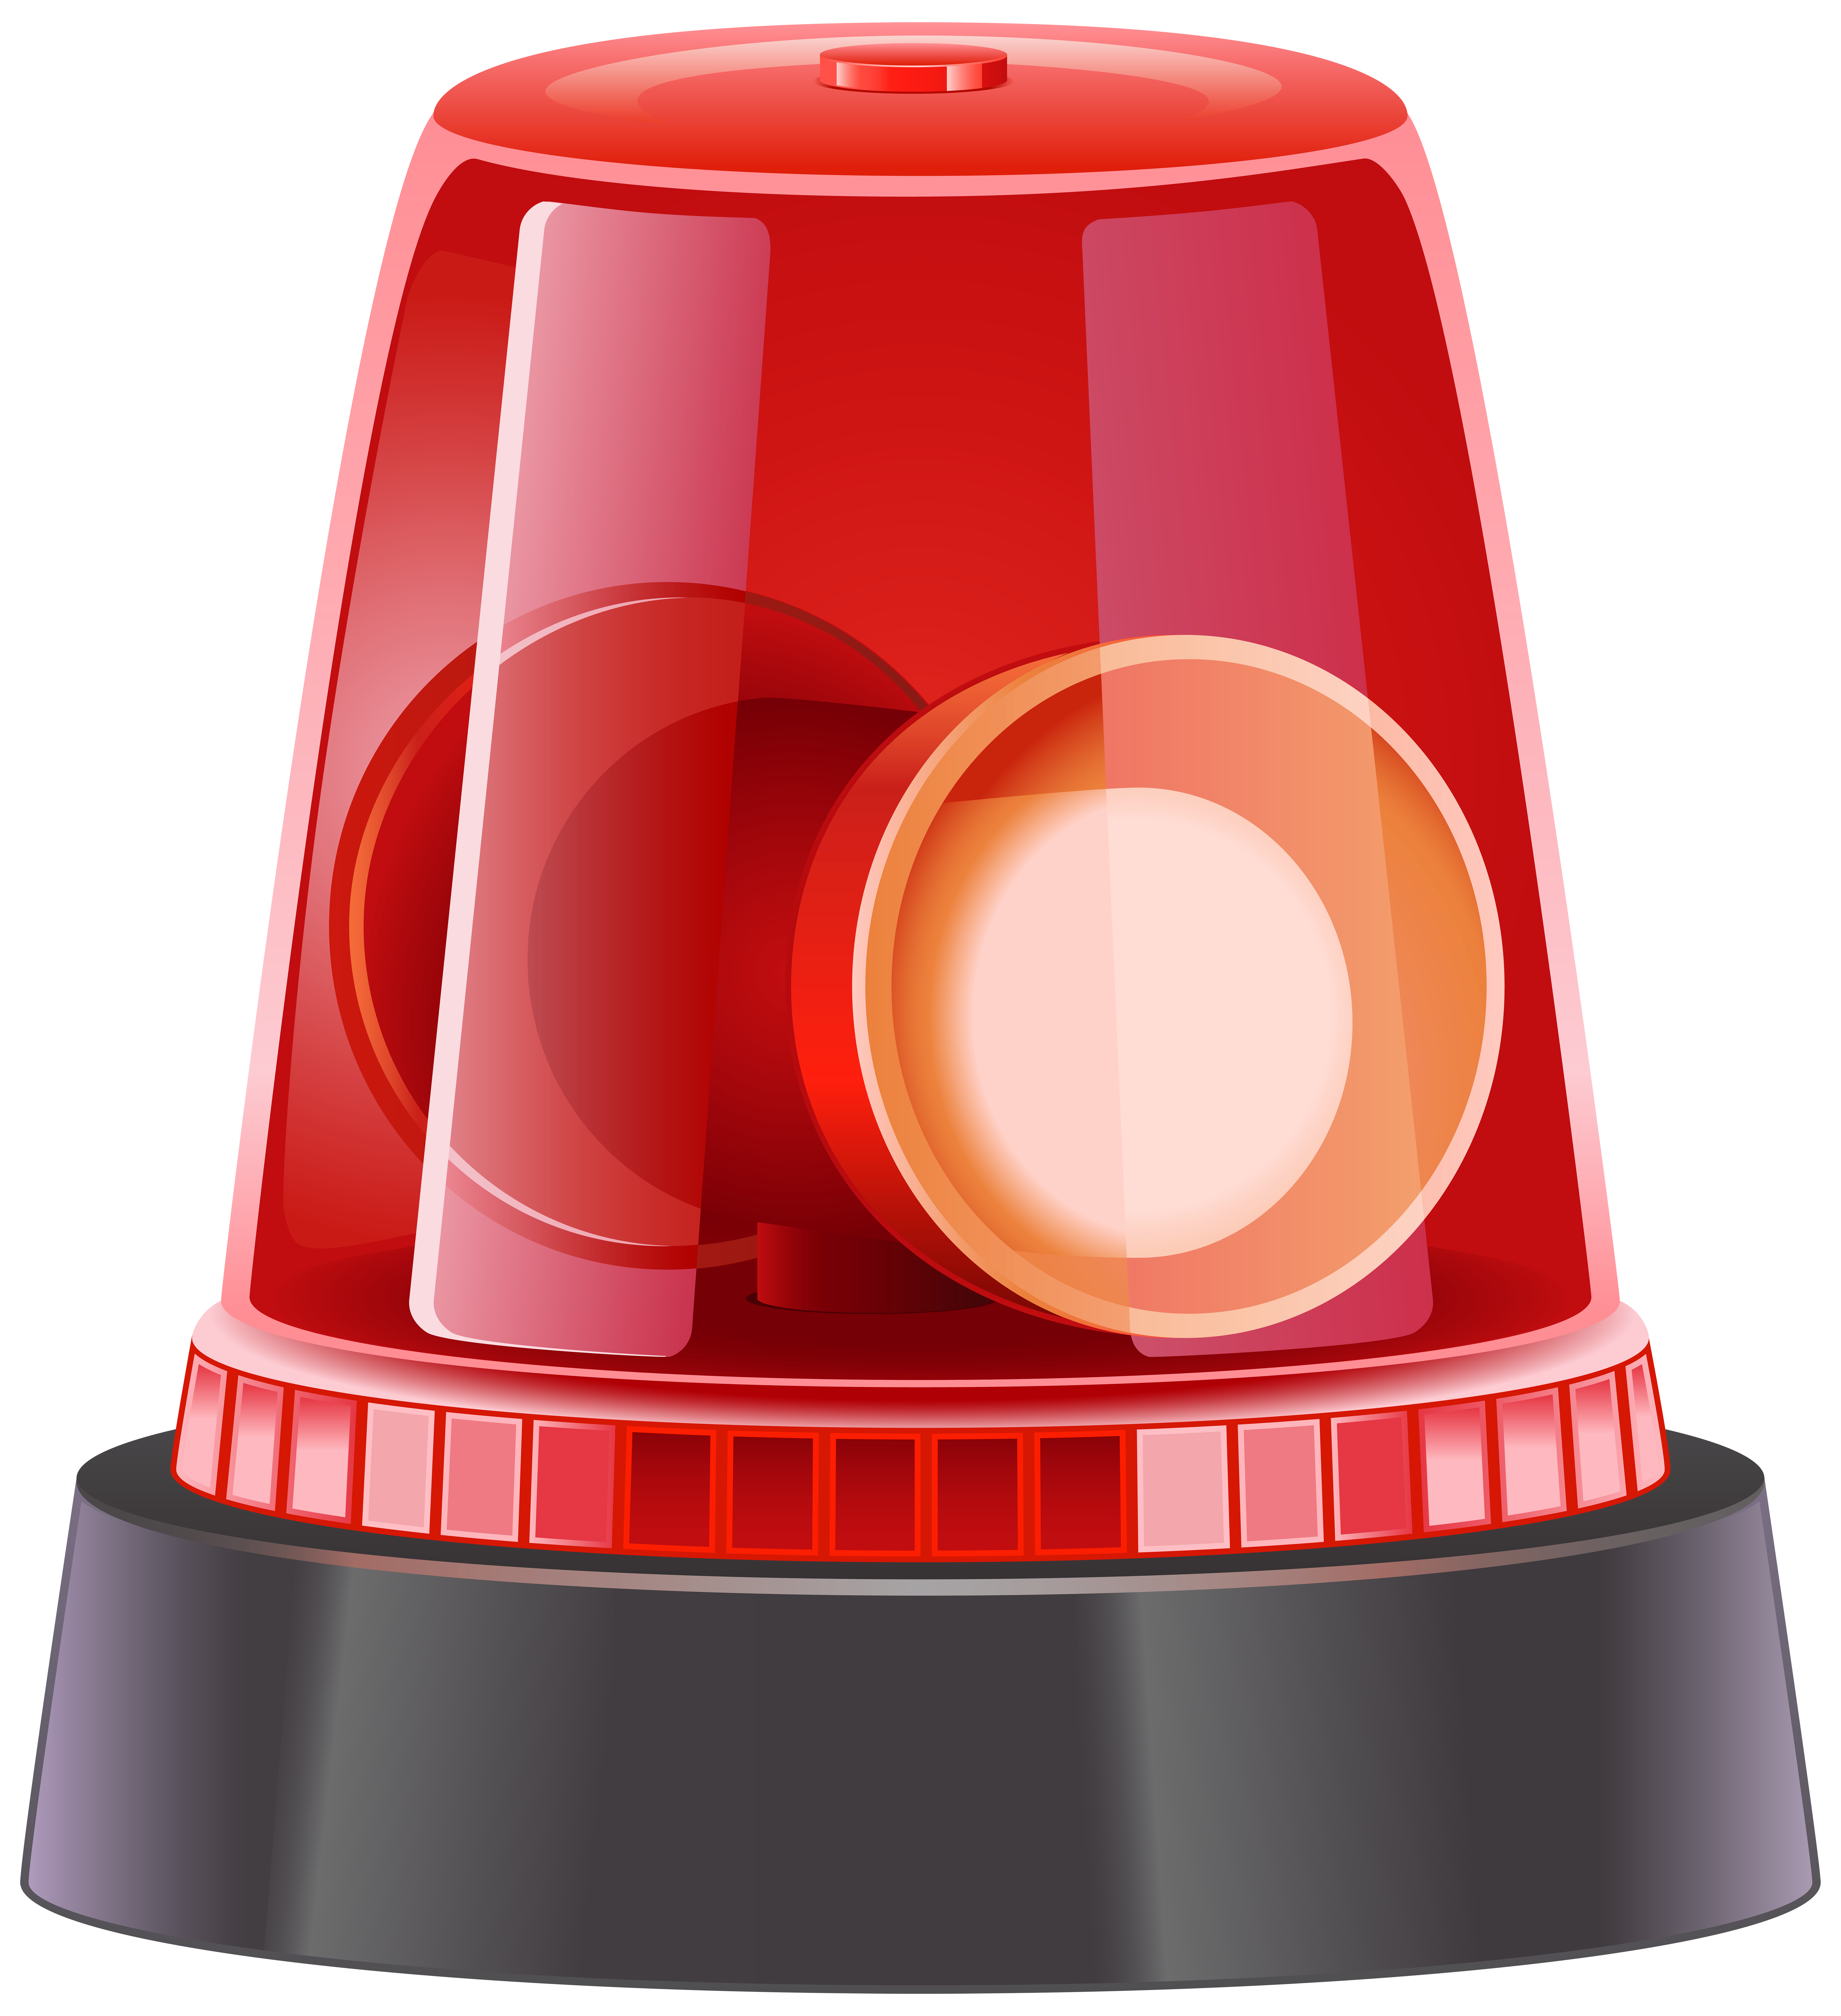 Red Police Siren PNG Clip Art Image.